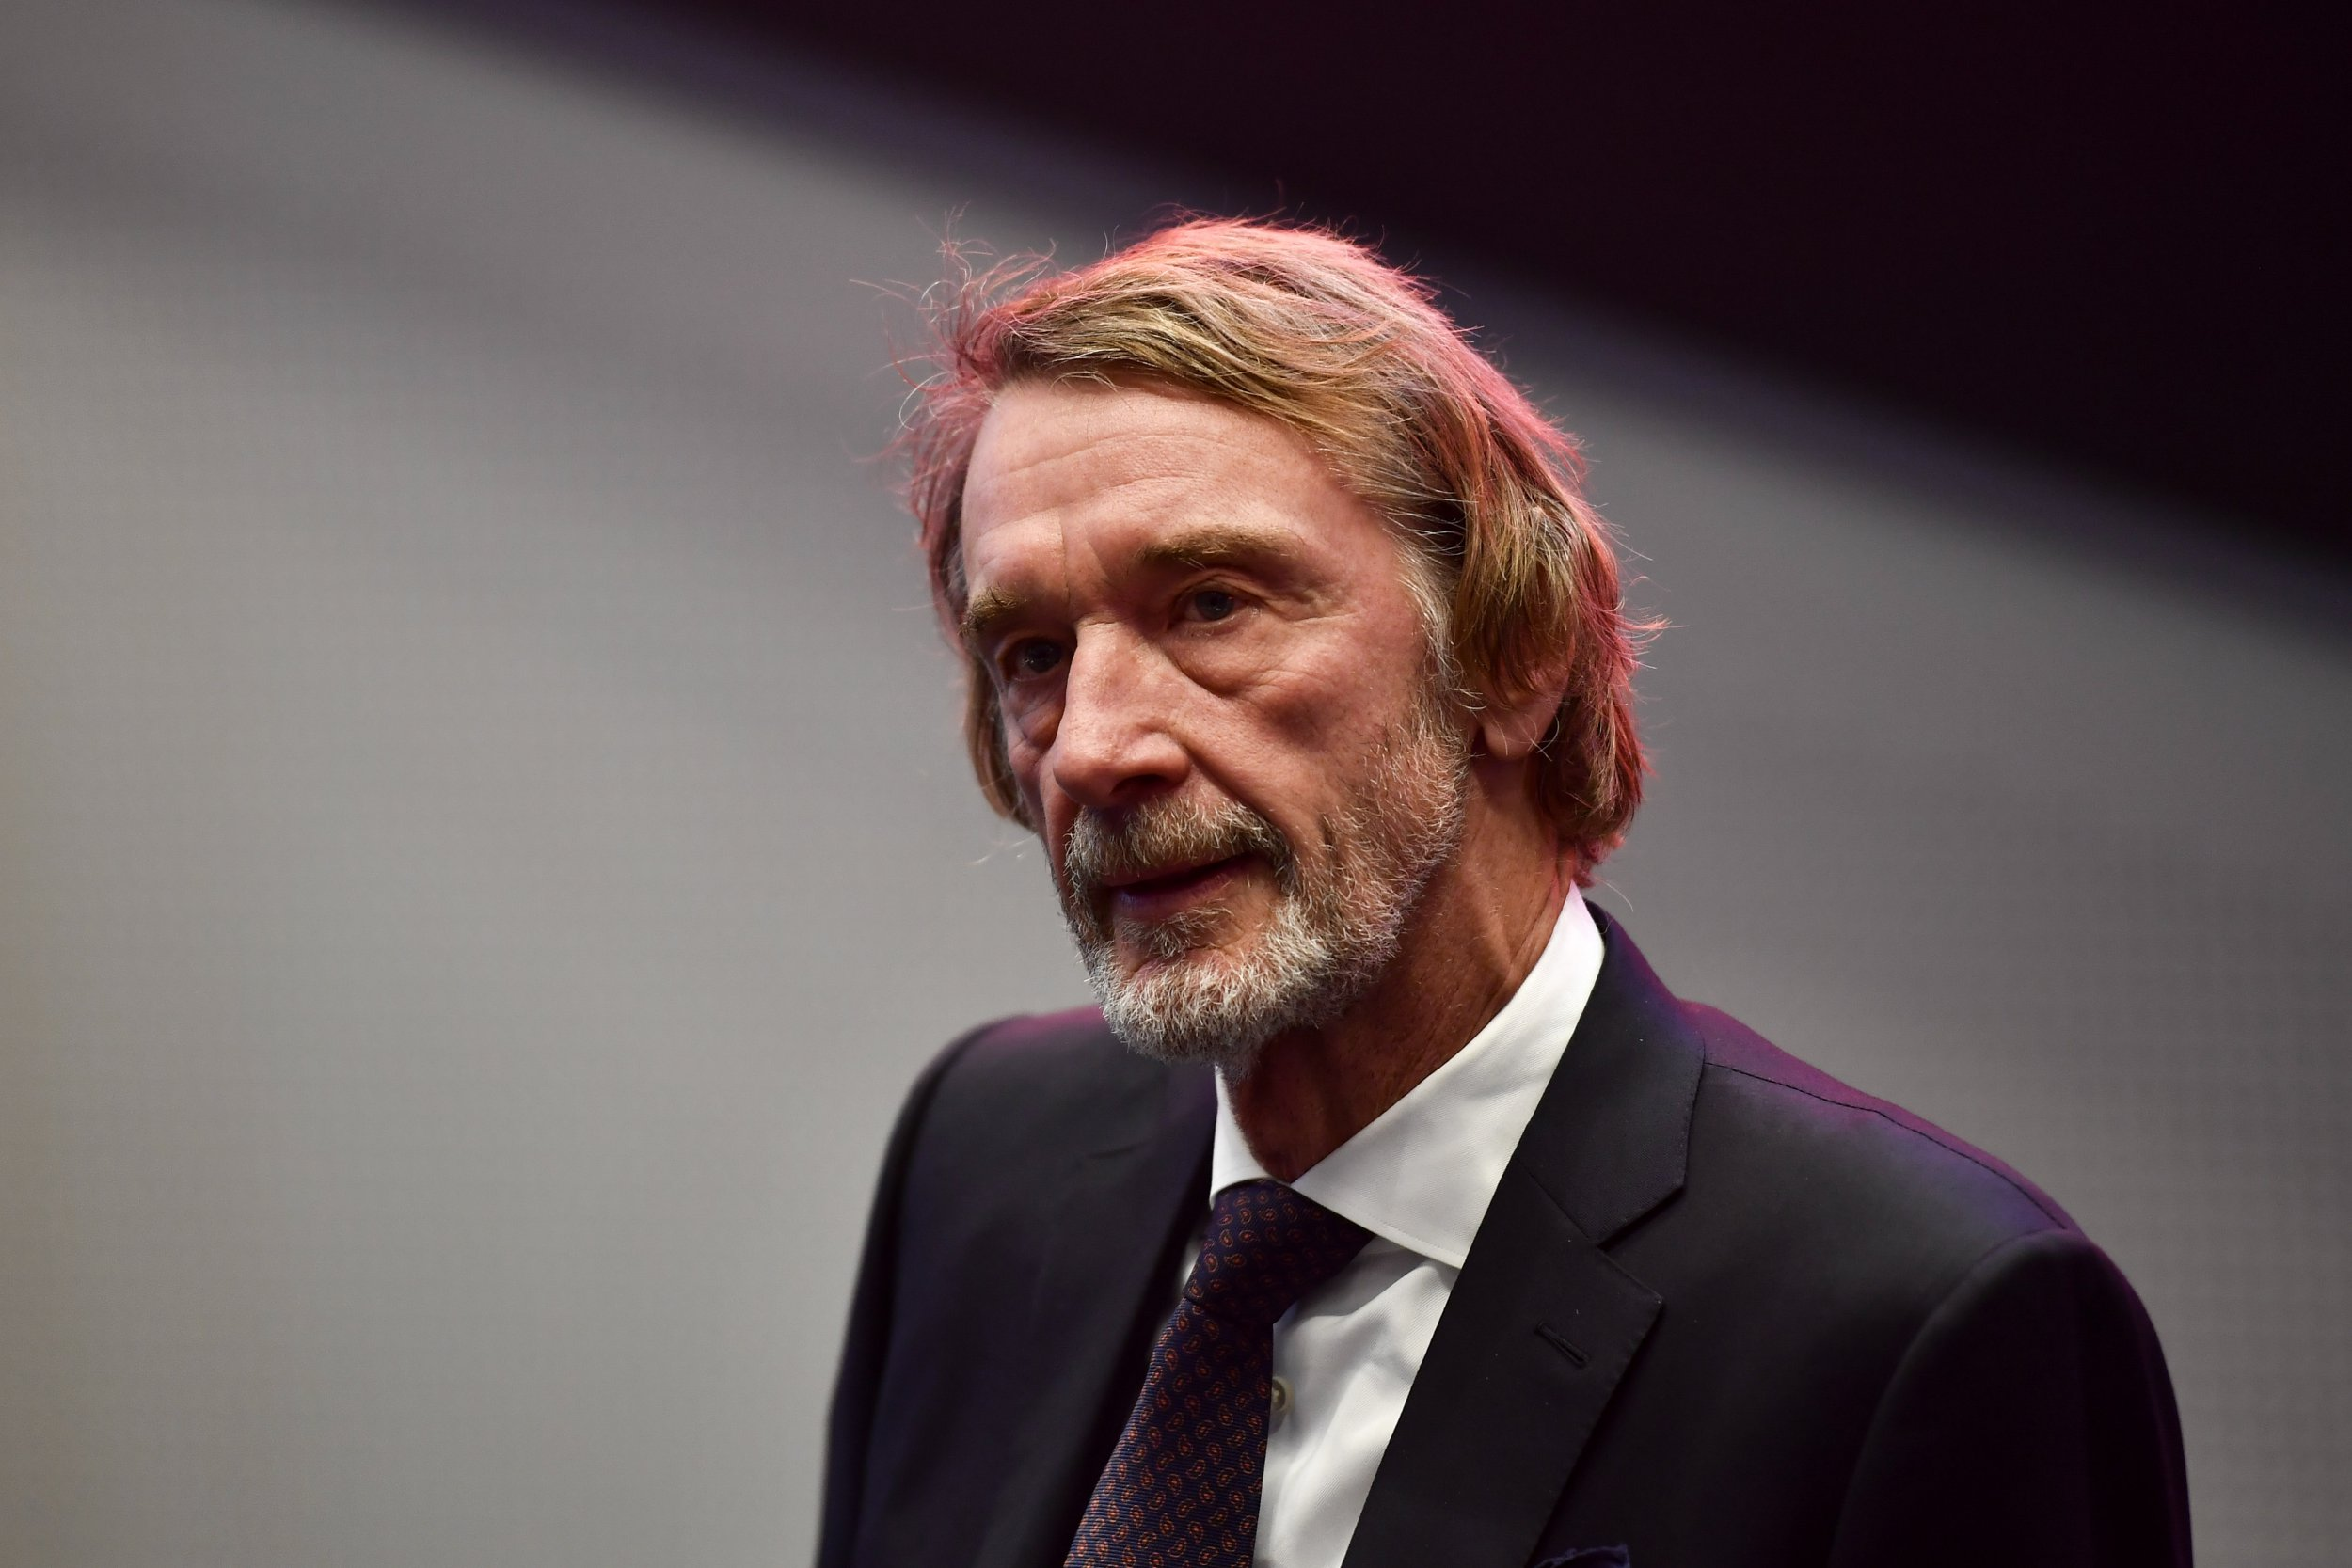 INEOS Group chairman Sir Jim Ratcliffe pictured during the signing of an investment pact between chemicals group Ineos and the Antwerp harbor, Tuesday 15 January 2019 in Antwerp. BELGA PHOTO DIRK WAEM (Photo credit should read DIRK WAEM/AFP/Getty Images)